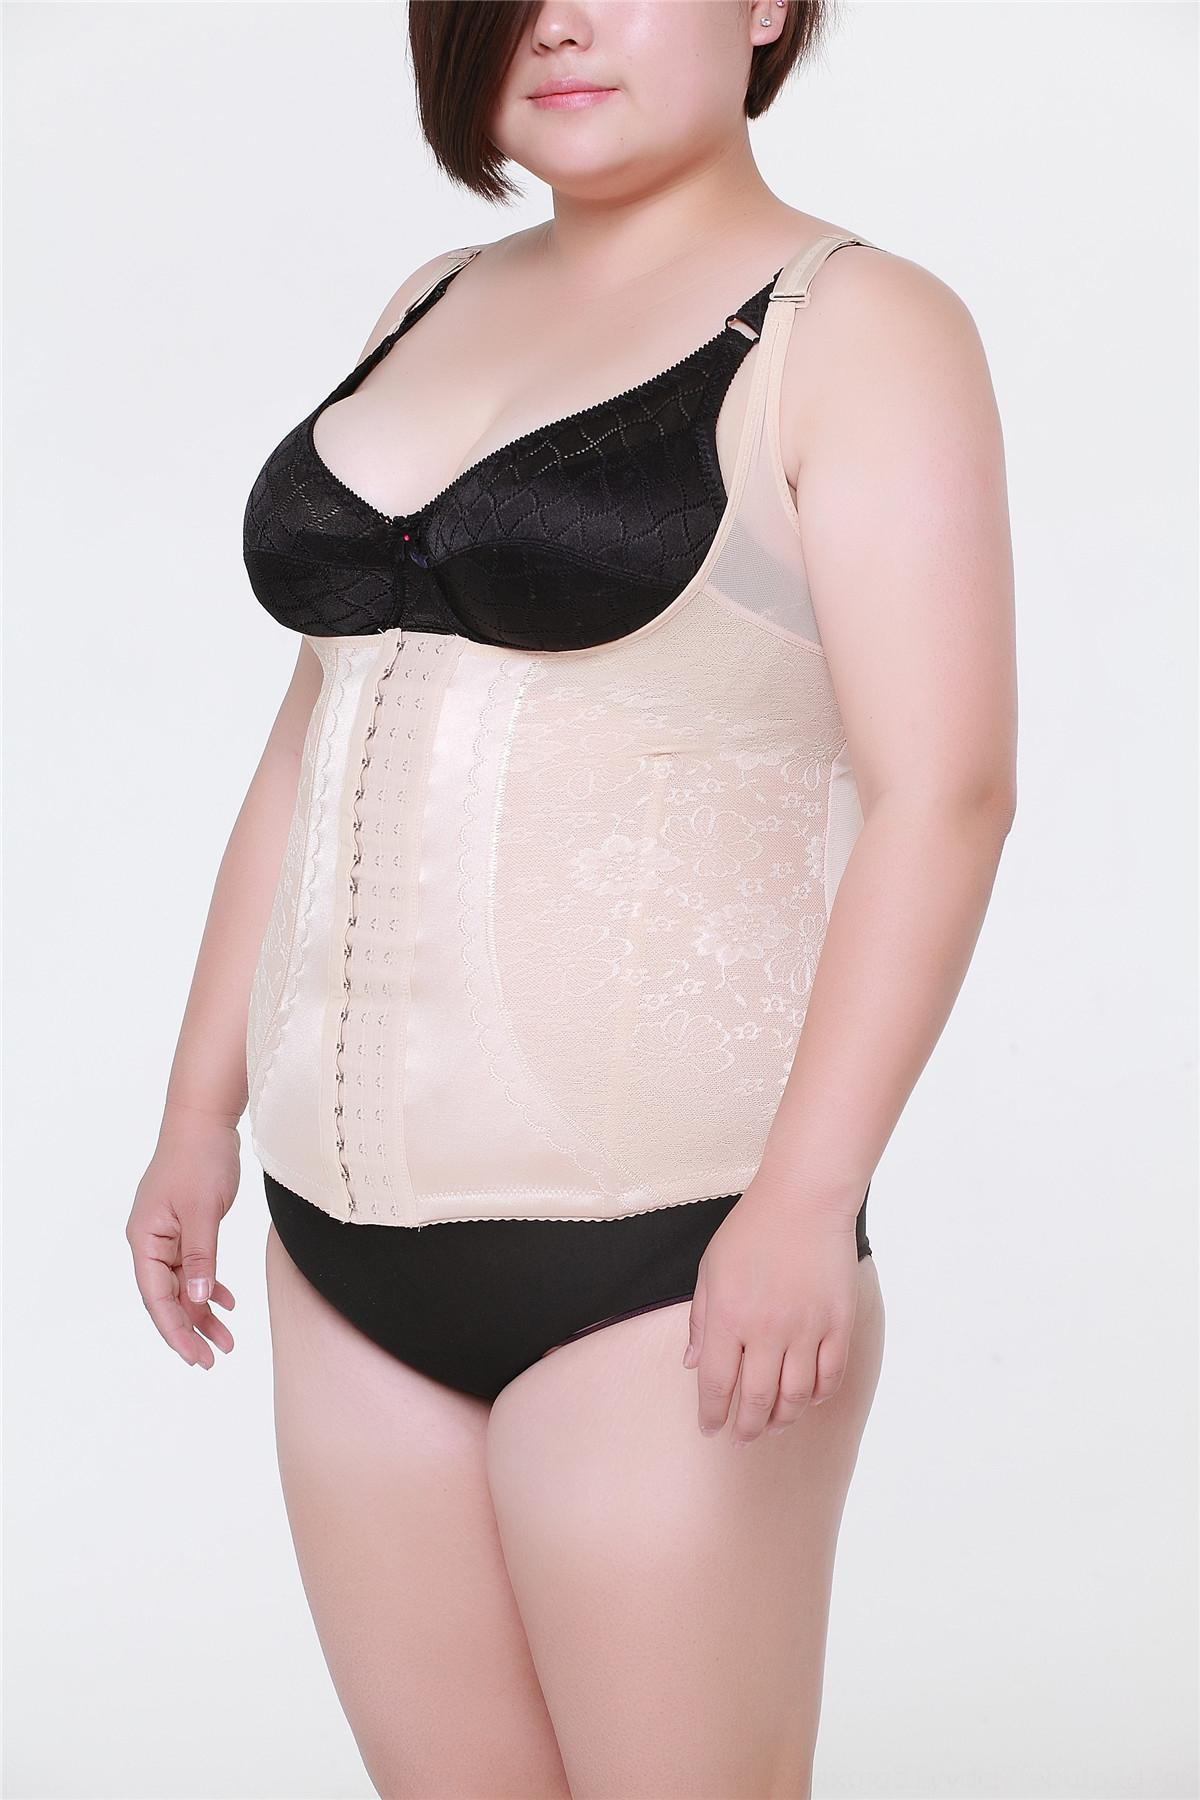 Women's large size plus fat body-shaping suit corset women's underwear summer tights Underwear tights breathable chest support 7